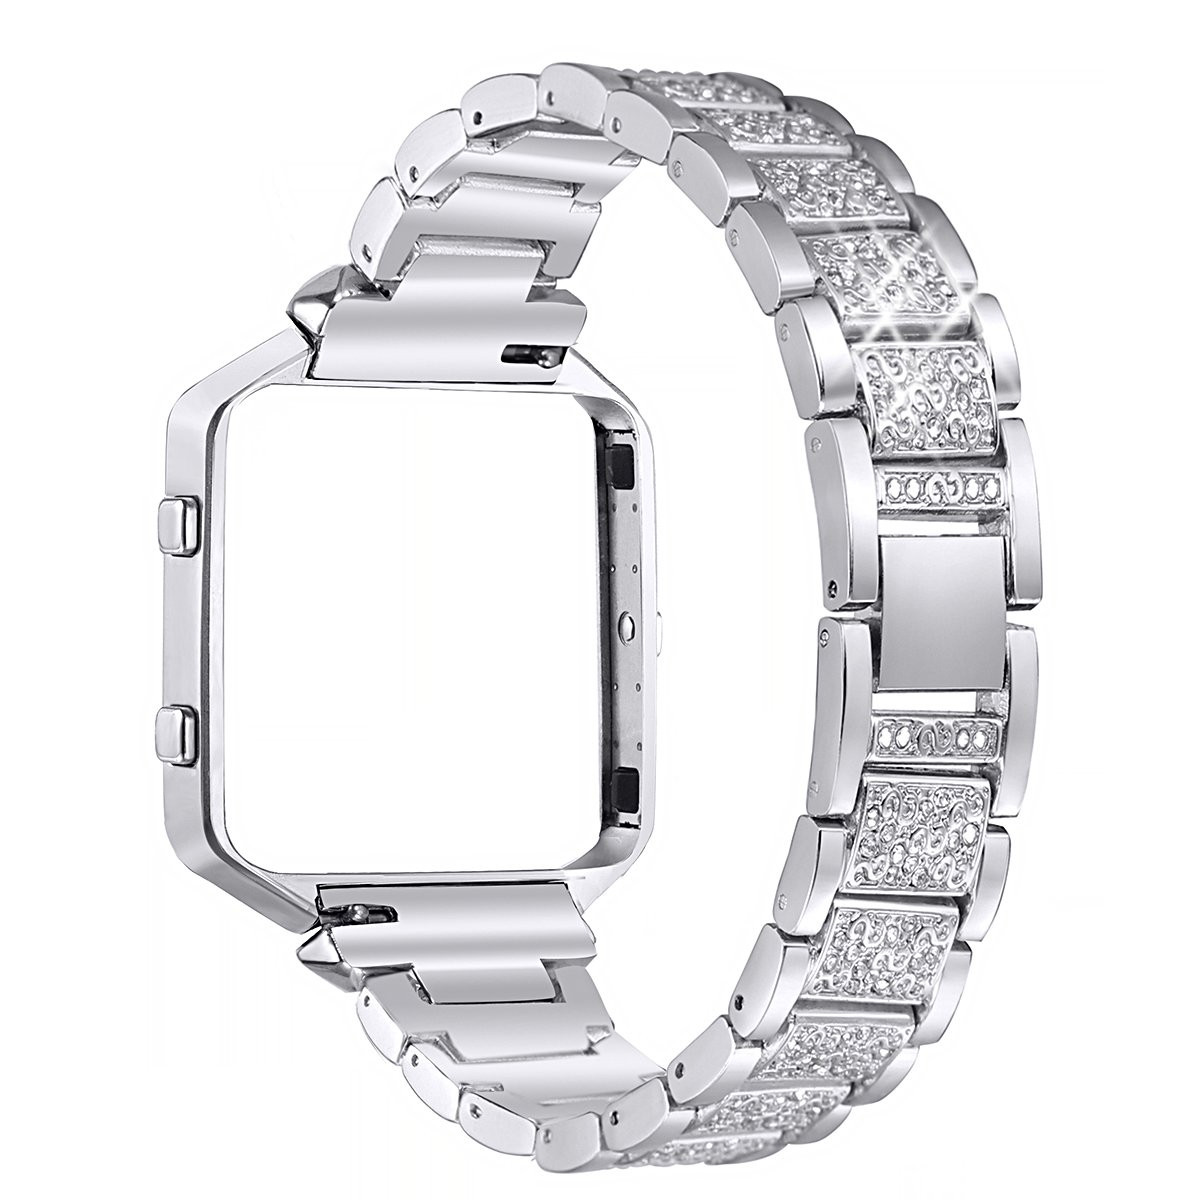 bayite Metal Bands with Frame Compatible Fitbit Blaze, Rhinestone Bling Replacement Accessory Bracelet Women, Silver